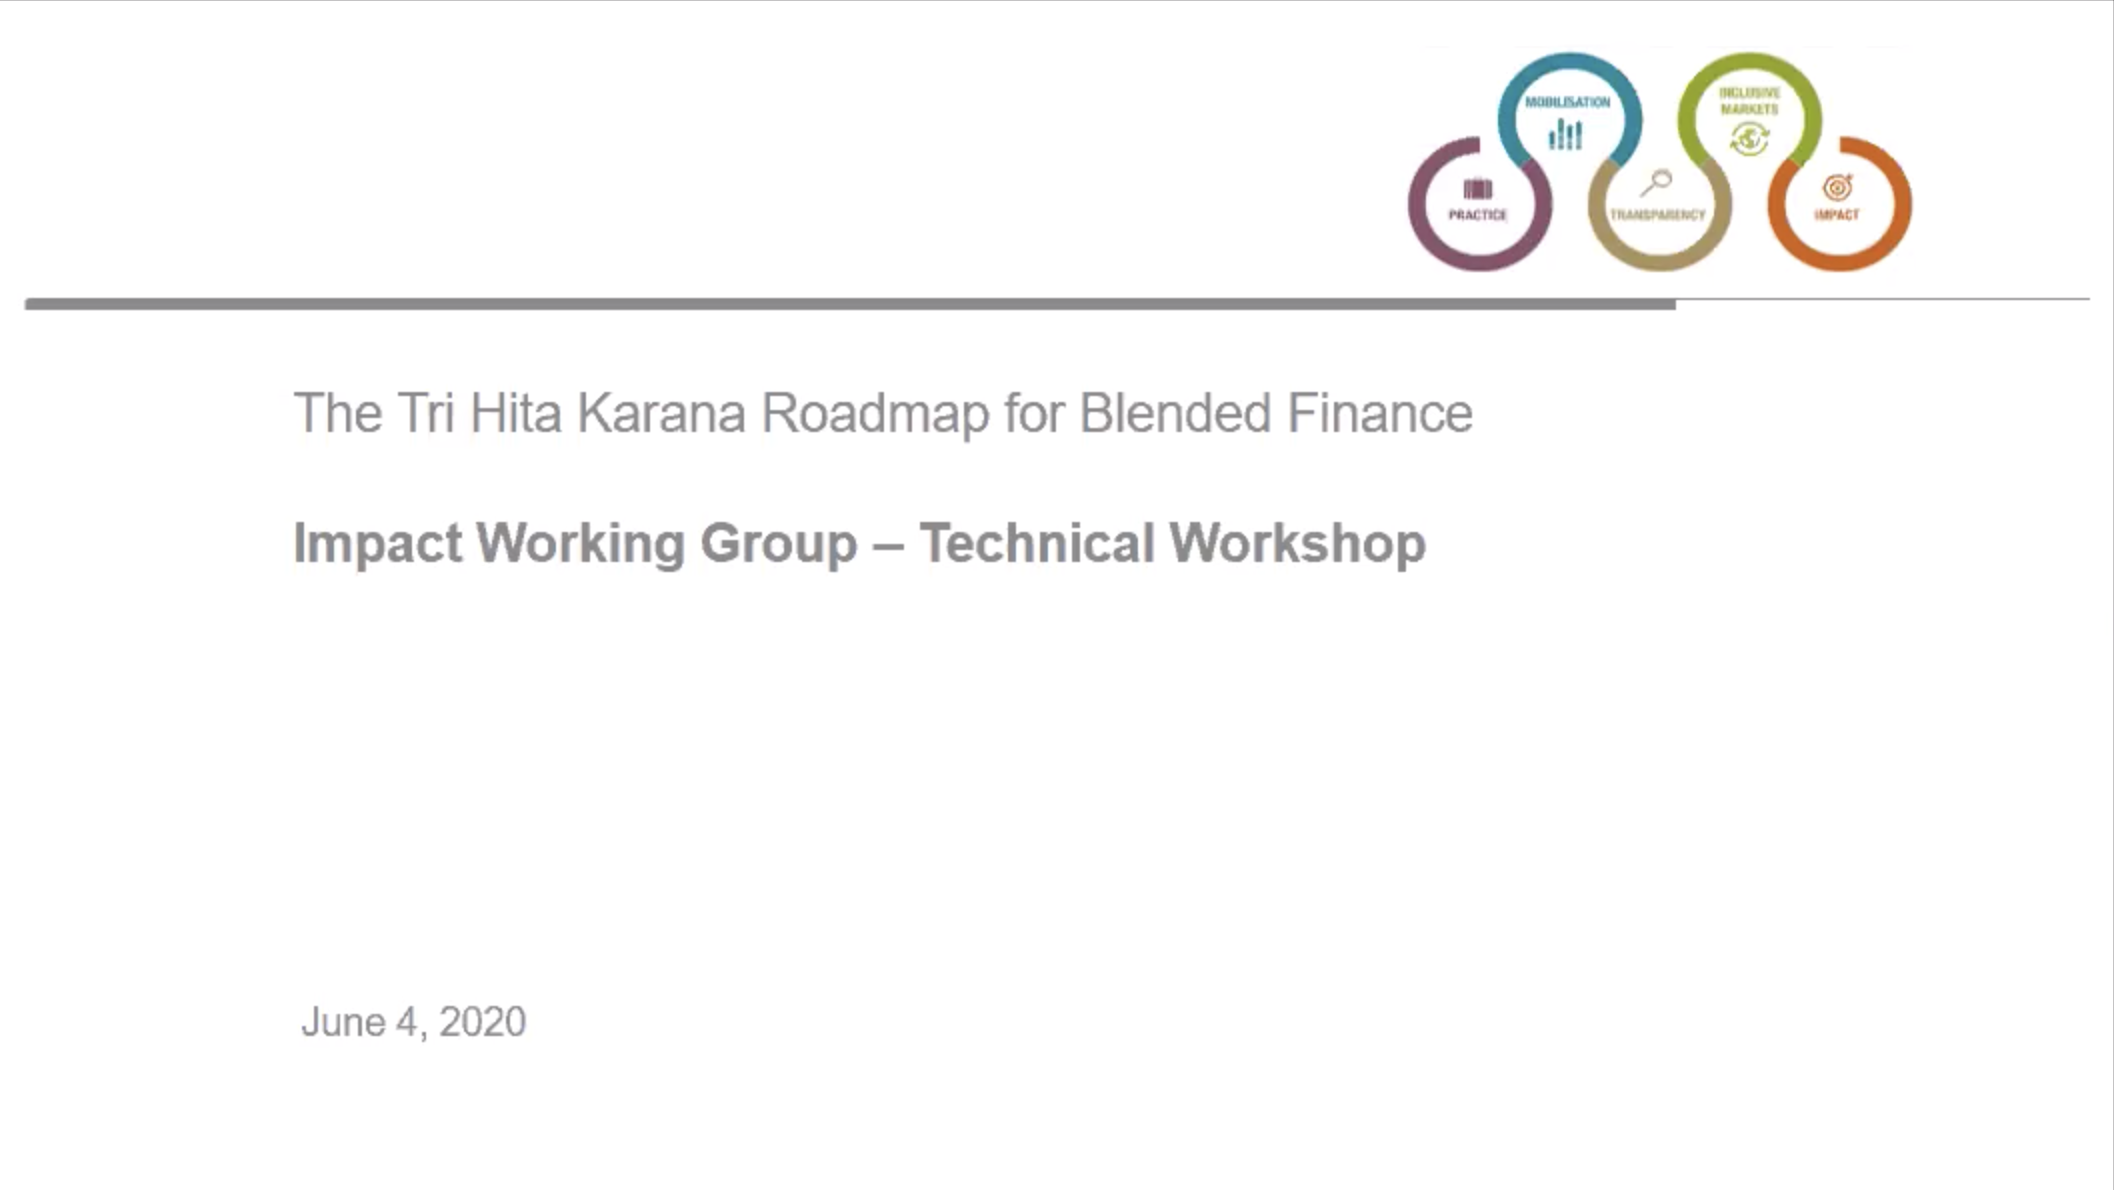 Impact Working Group – Technical Workshop (Video Recording)